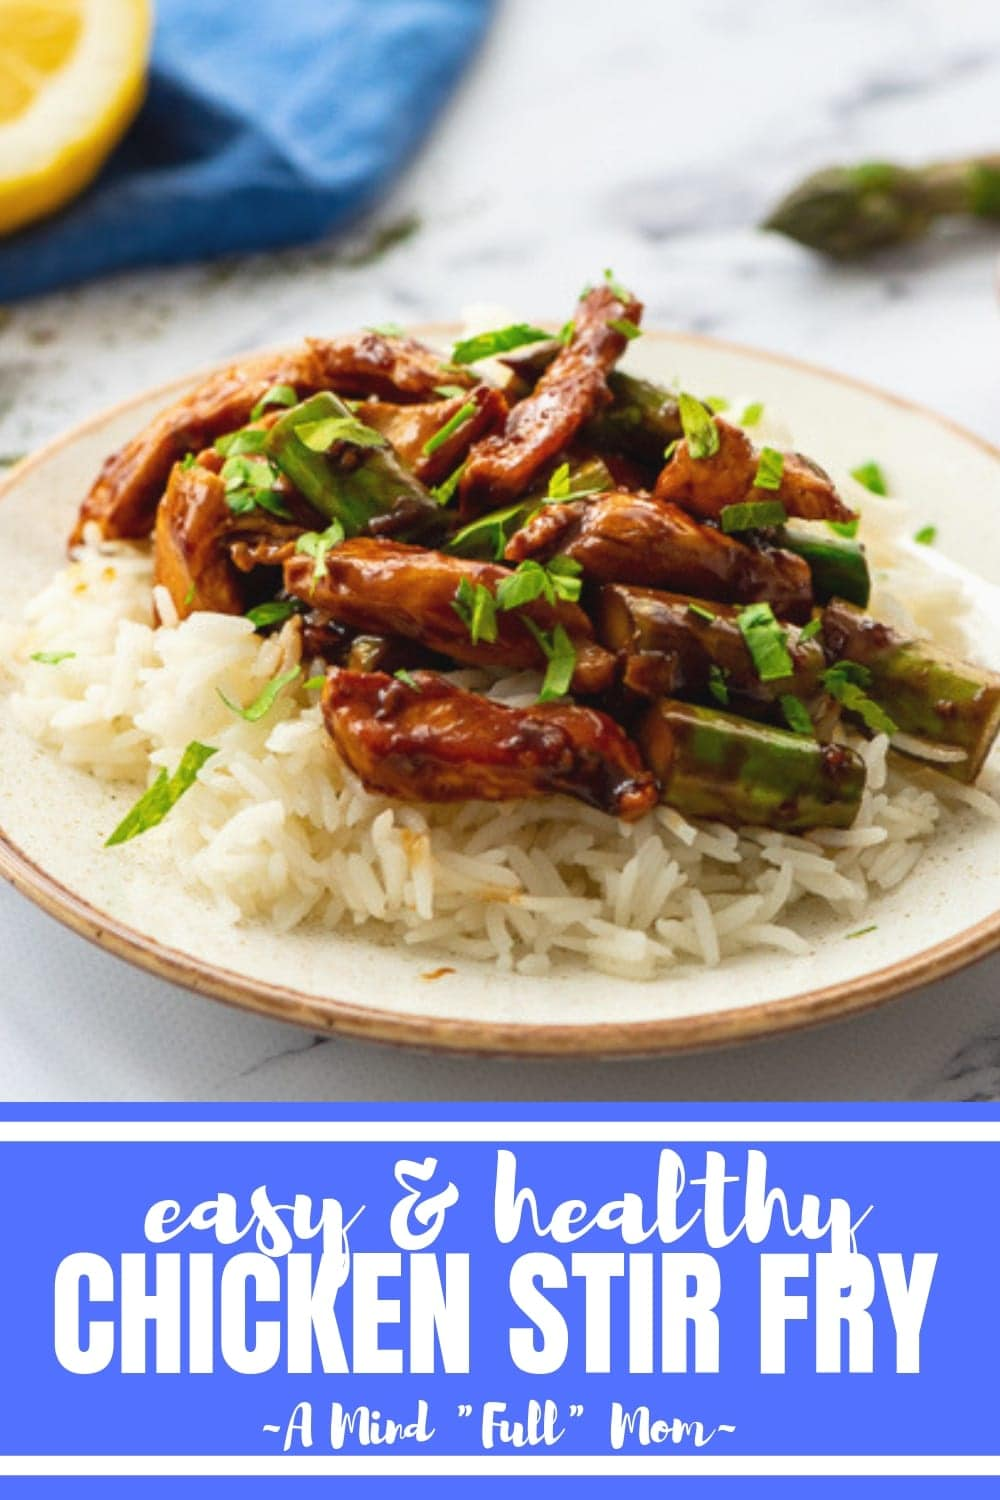 This Simple Healthy Chicken and Asparagus Stir Fry comes together in less than 15 minutes! This chicken stir fry recipe makes a quick and delicious meal that features chicken and asparagus glazed in a sweet and tangy honey lemon stir fry sauce. #30minutemeal #chickenrecipe #stirfry